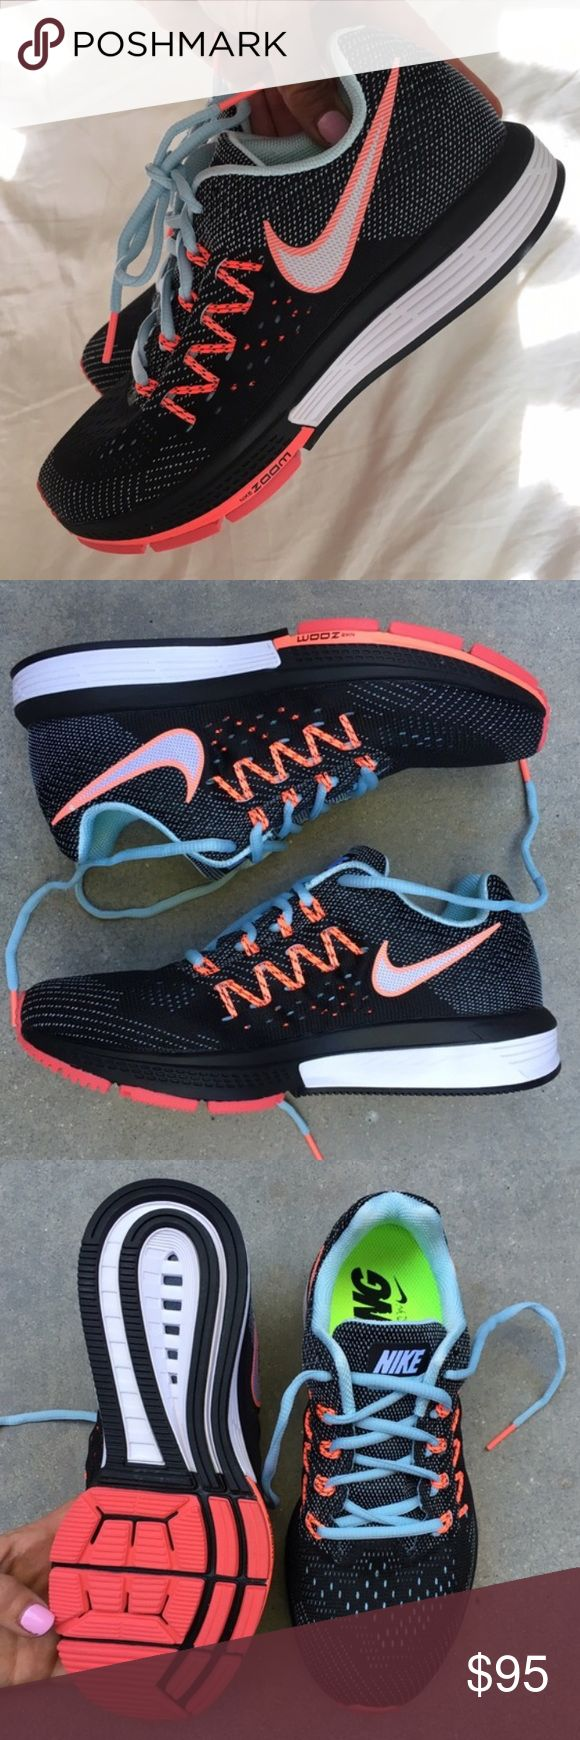 NWOB NIKE VOMERO 10 sz 7 women's available New never worn Nike VOMERO. Black / ice blue / hot lava SIZES AVAILABLE.. 7 woman's. no box ships in a new shipping box each shoe wrapped nicely in tissue 🤗  For the serious runner! 👟 or to look CUTE! Flymesh upper w/ Flywire technology. Dual-density Cushlon midsole. Duralon rubber in the forefoot and high-abrasion rubber in the heel for a winning combination of traction and cushion. Ships same or next day. Bundle to save. Nike Shoes Athletic…